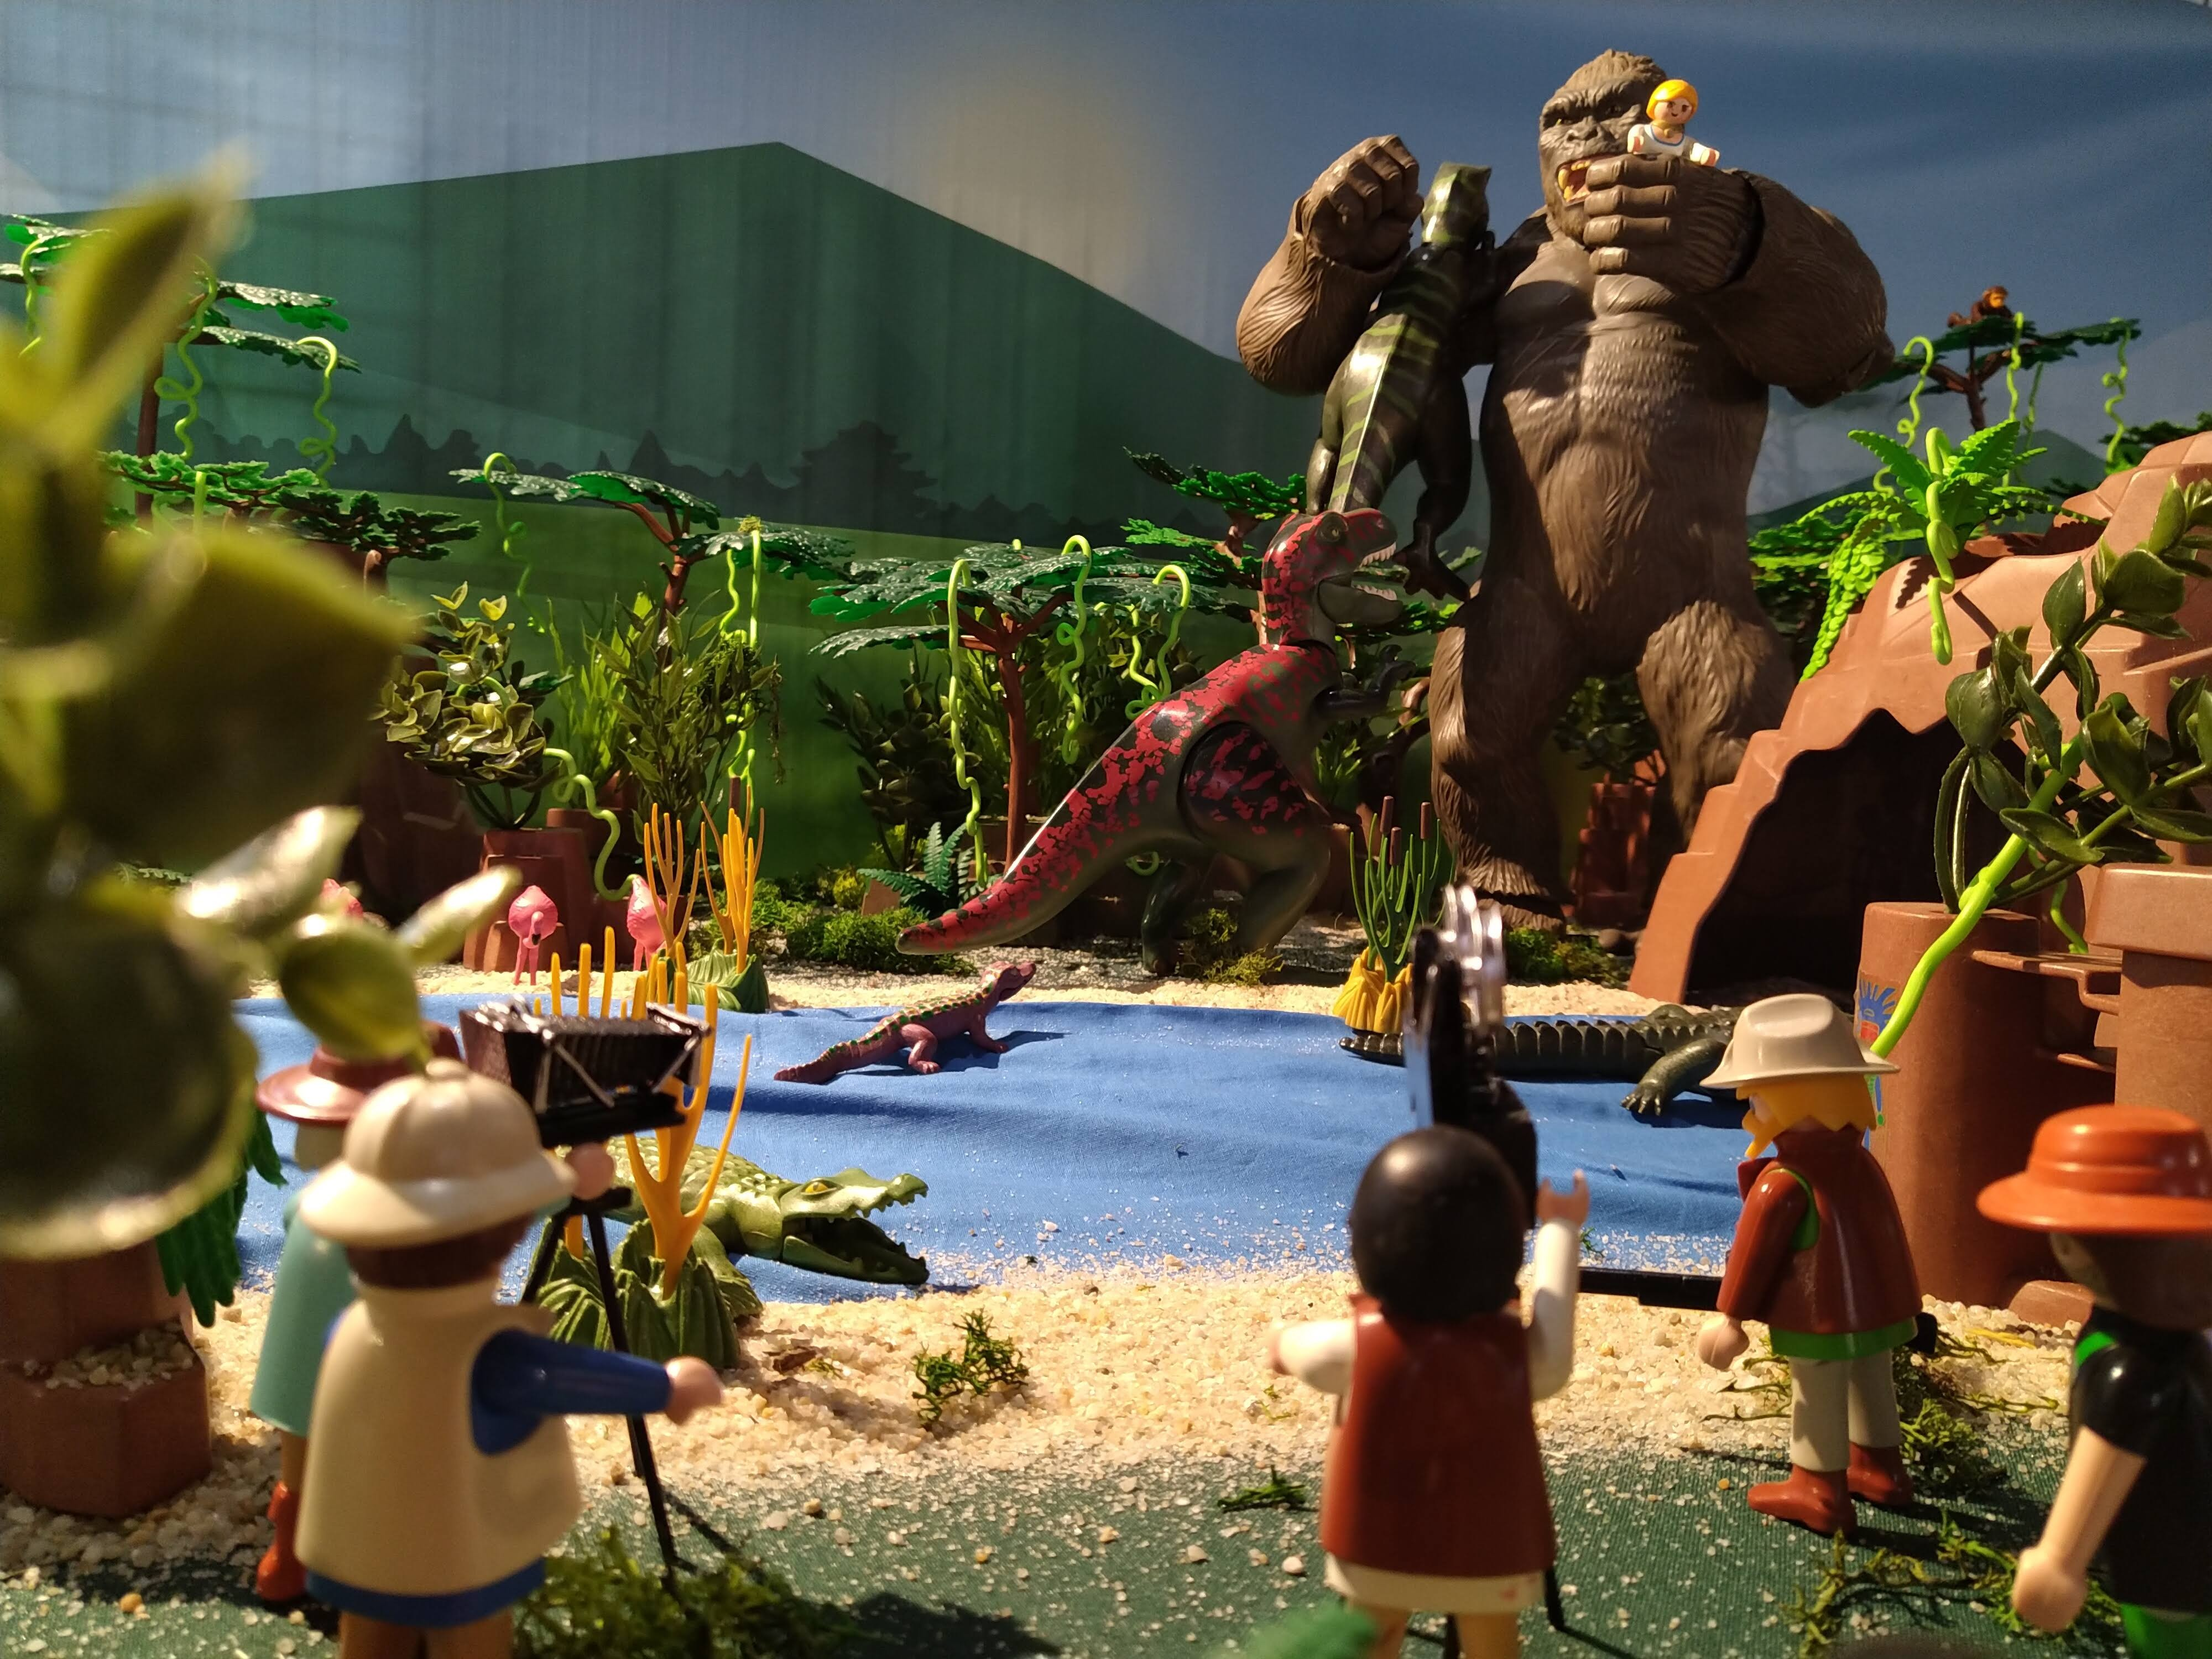 Kingkong en playmobil